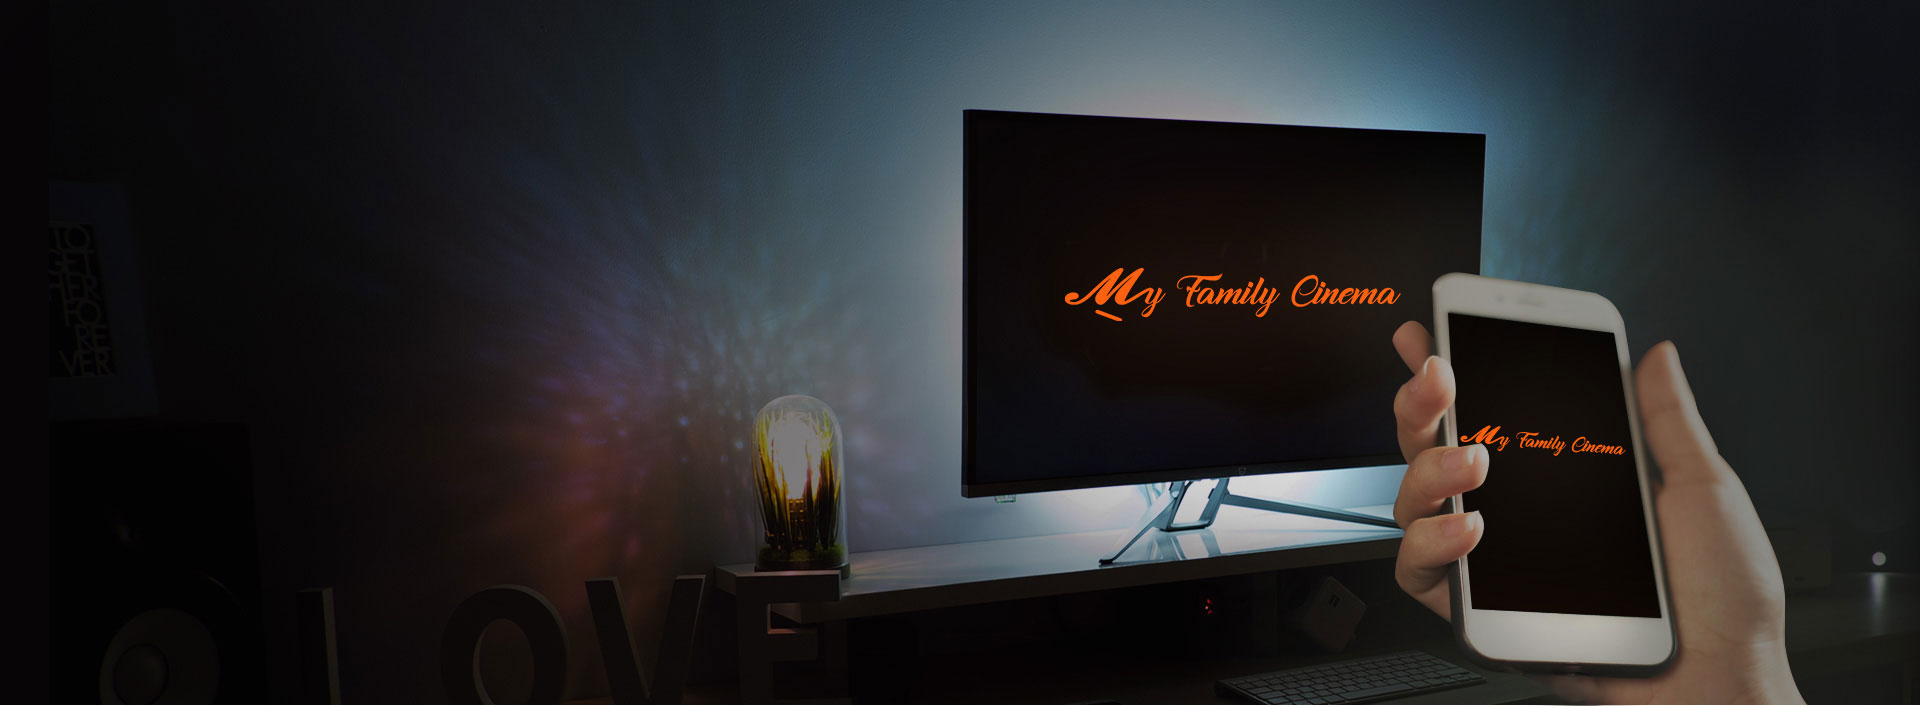 Try the My Family Cinema APK for free